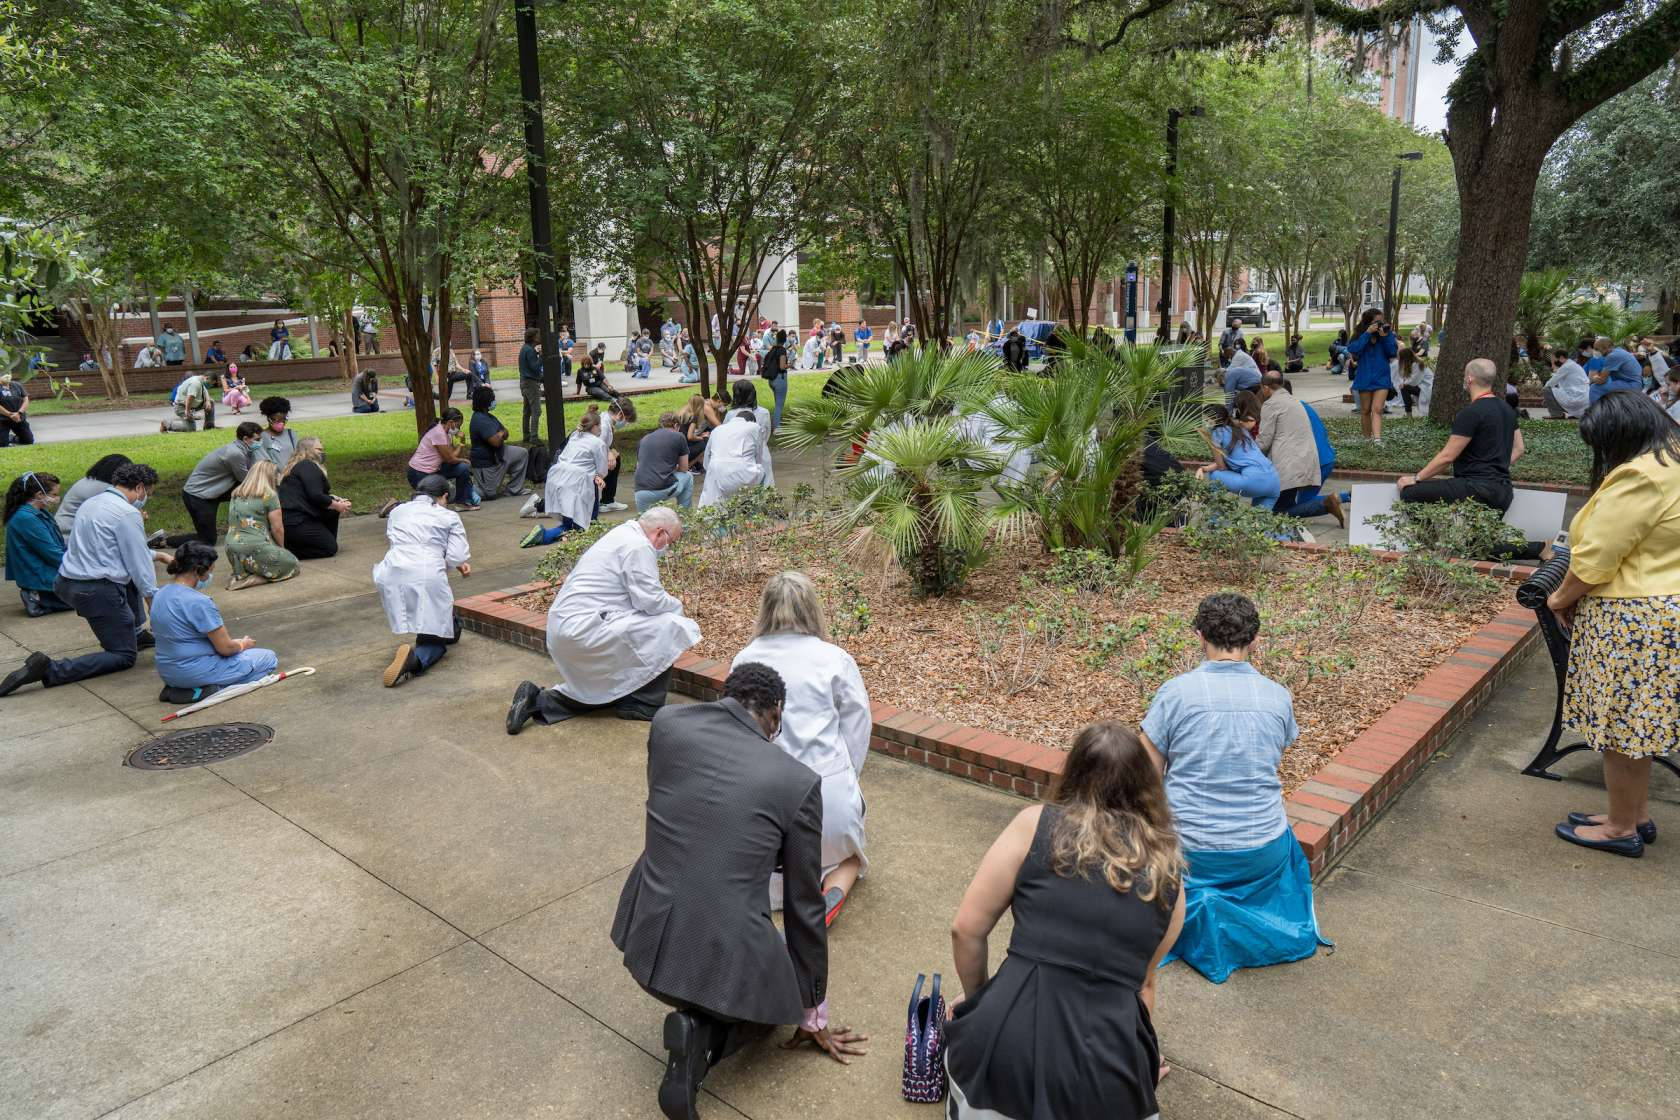 UF Health members join in reflection as part of a White Coats for Black Lives event.